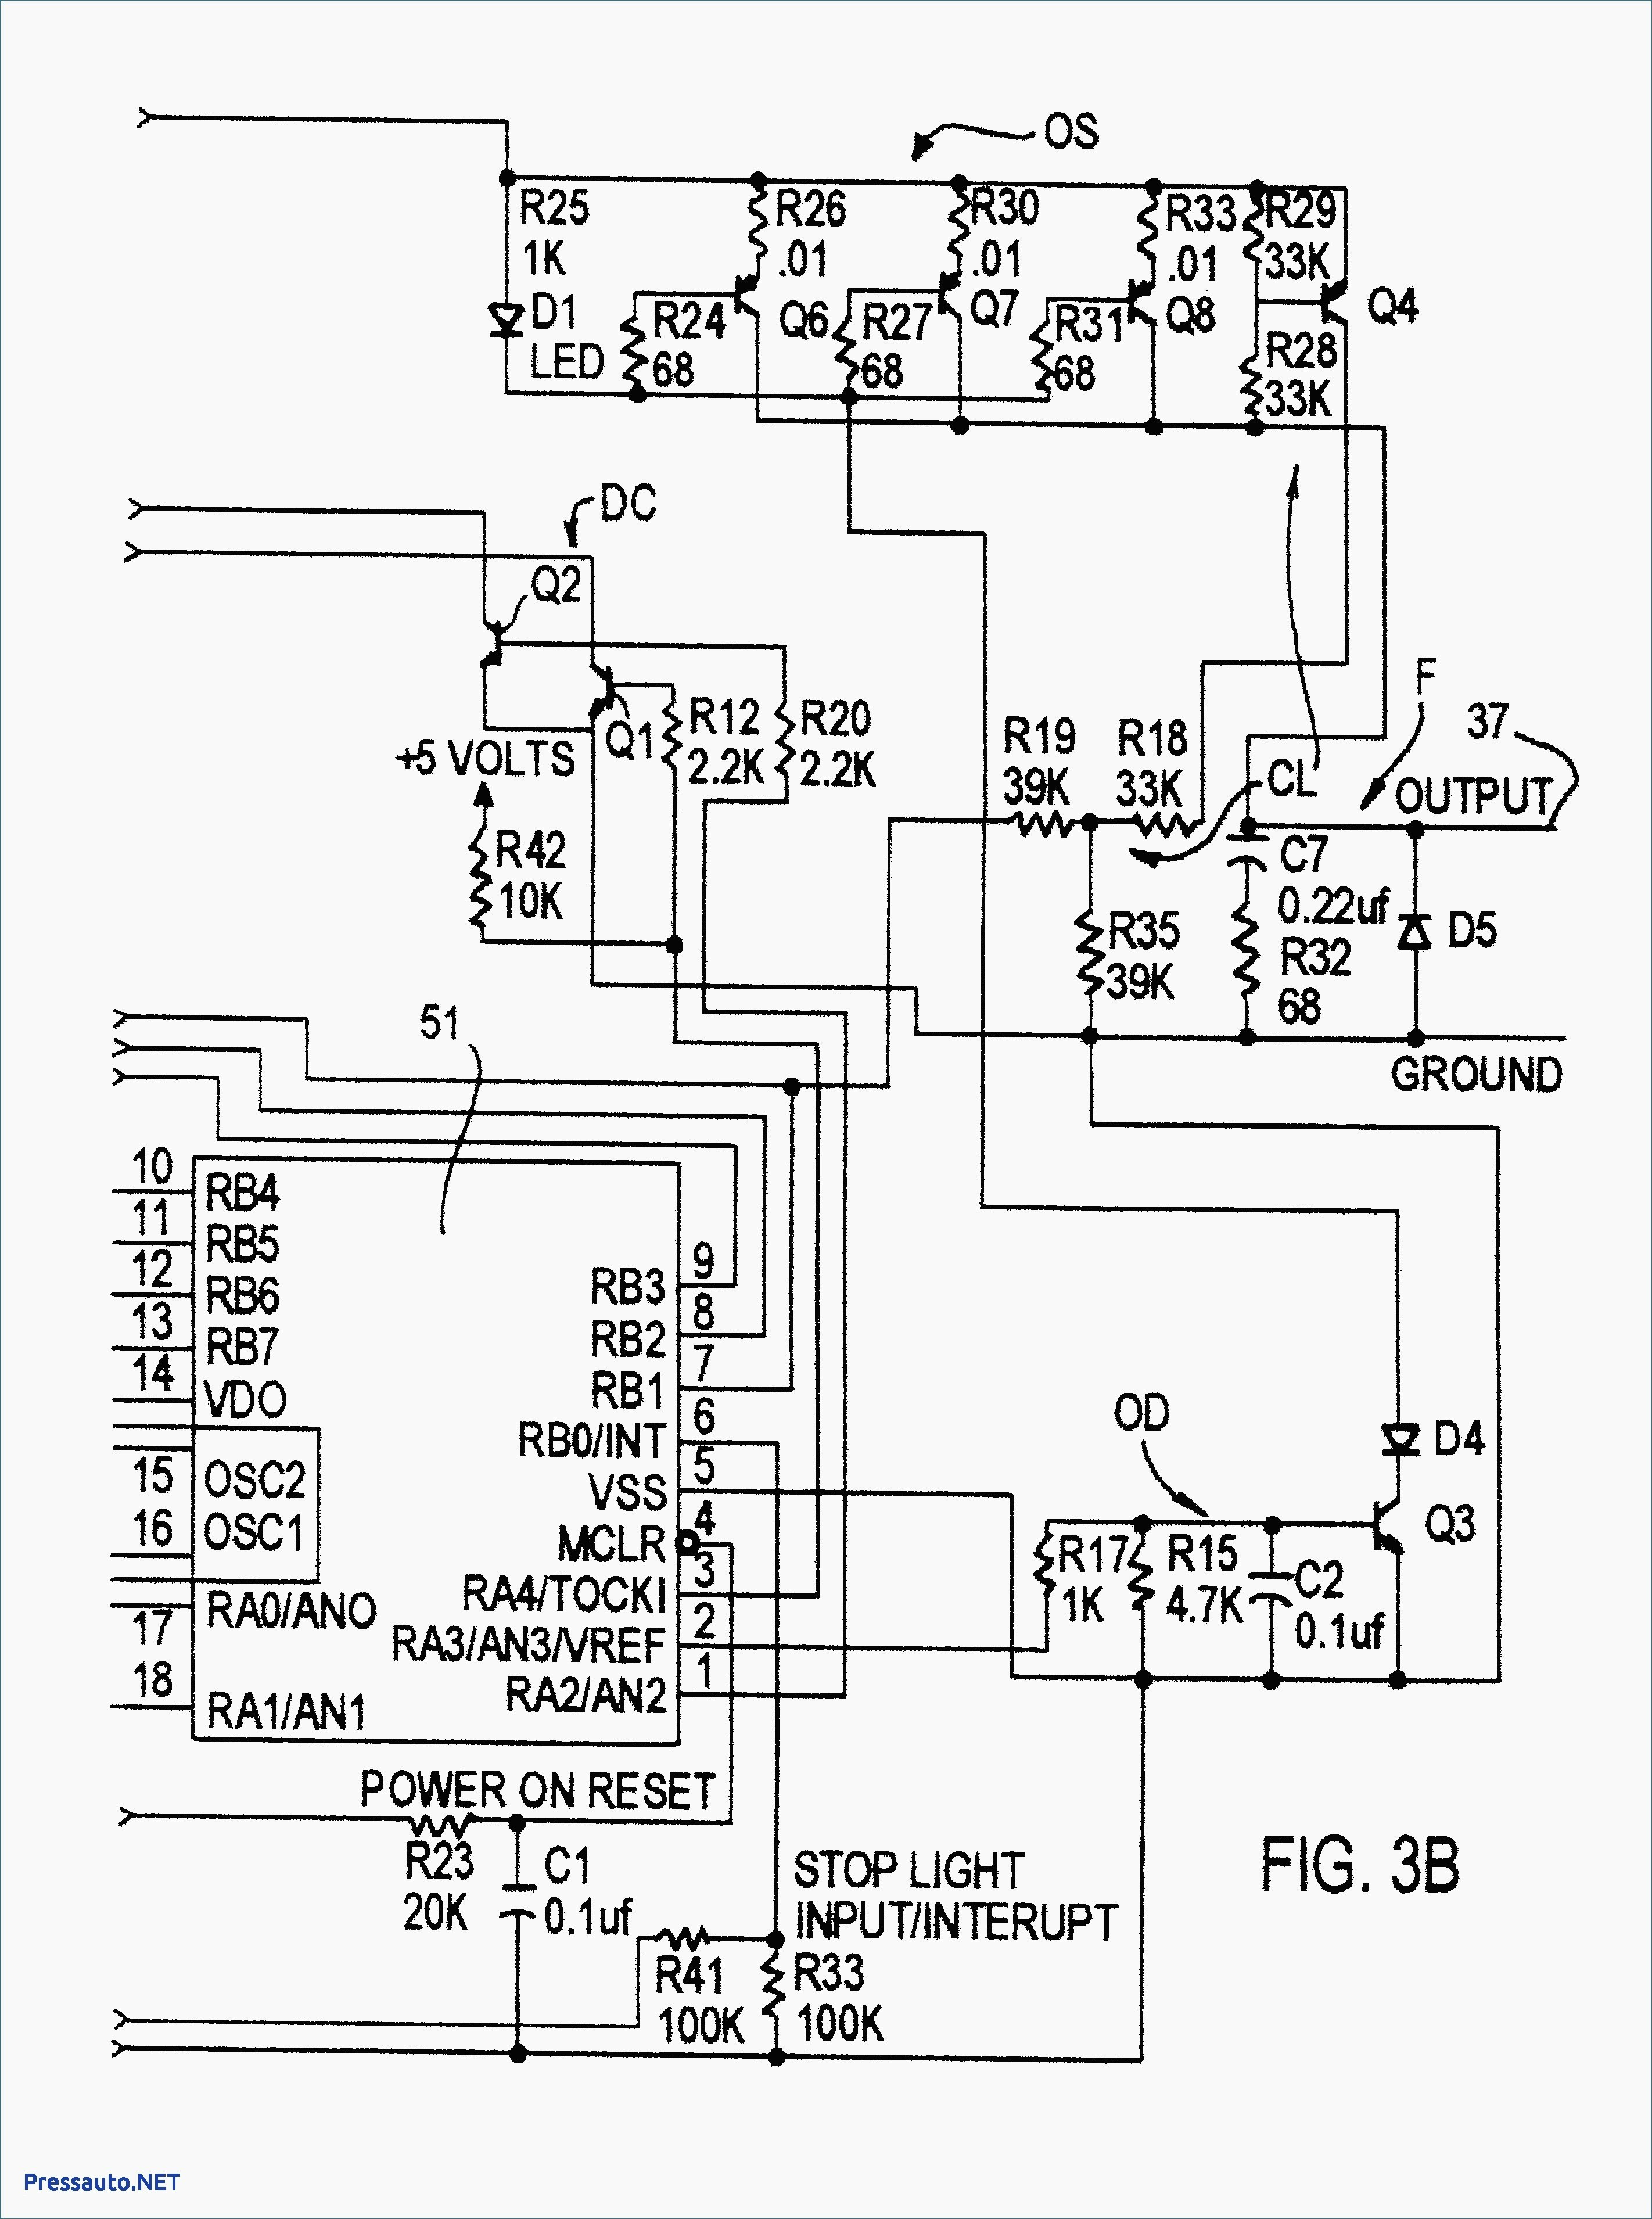 Gm Parts Diagrams Exploded Views 1997 Chevy Truck Door Parts Diagram Chevrolet Wiring Diagrams Of Gm Parts Diagrams Exploded Views